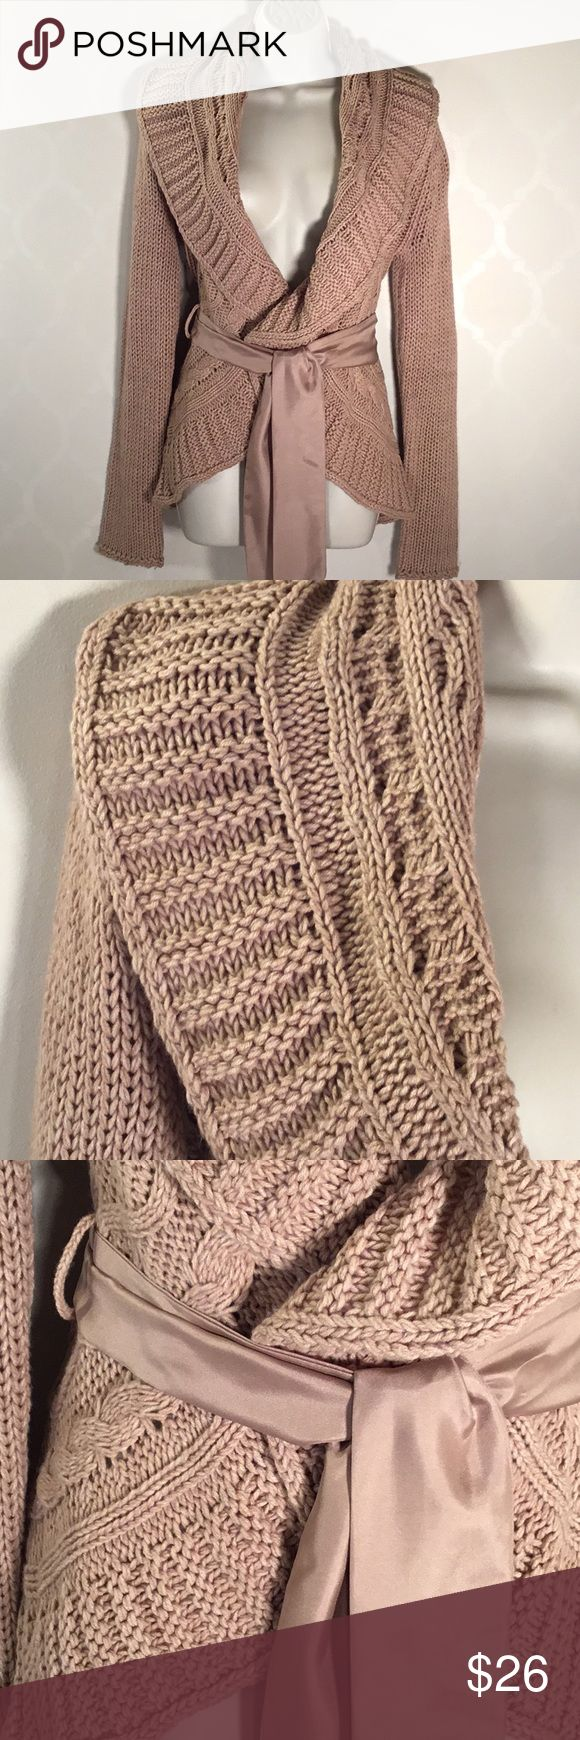 NY&CO TAN CARDIGAN New York and Company Cardigan ➖ Gorgeous Knit Pattern ➖Curved Front Hemline ➖ Satin Belt ➖ Shawl Collar ➖ NWOT .... NEVER WORN New York & Company Sweaters Cardigans